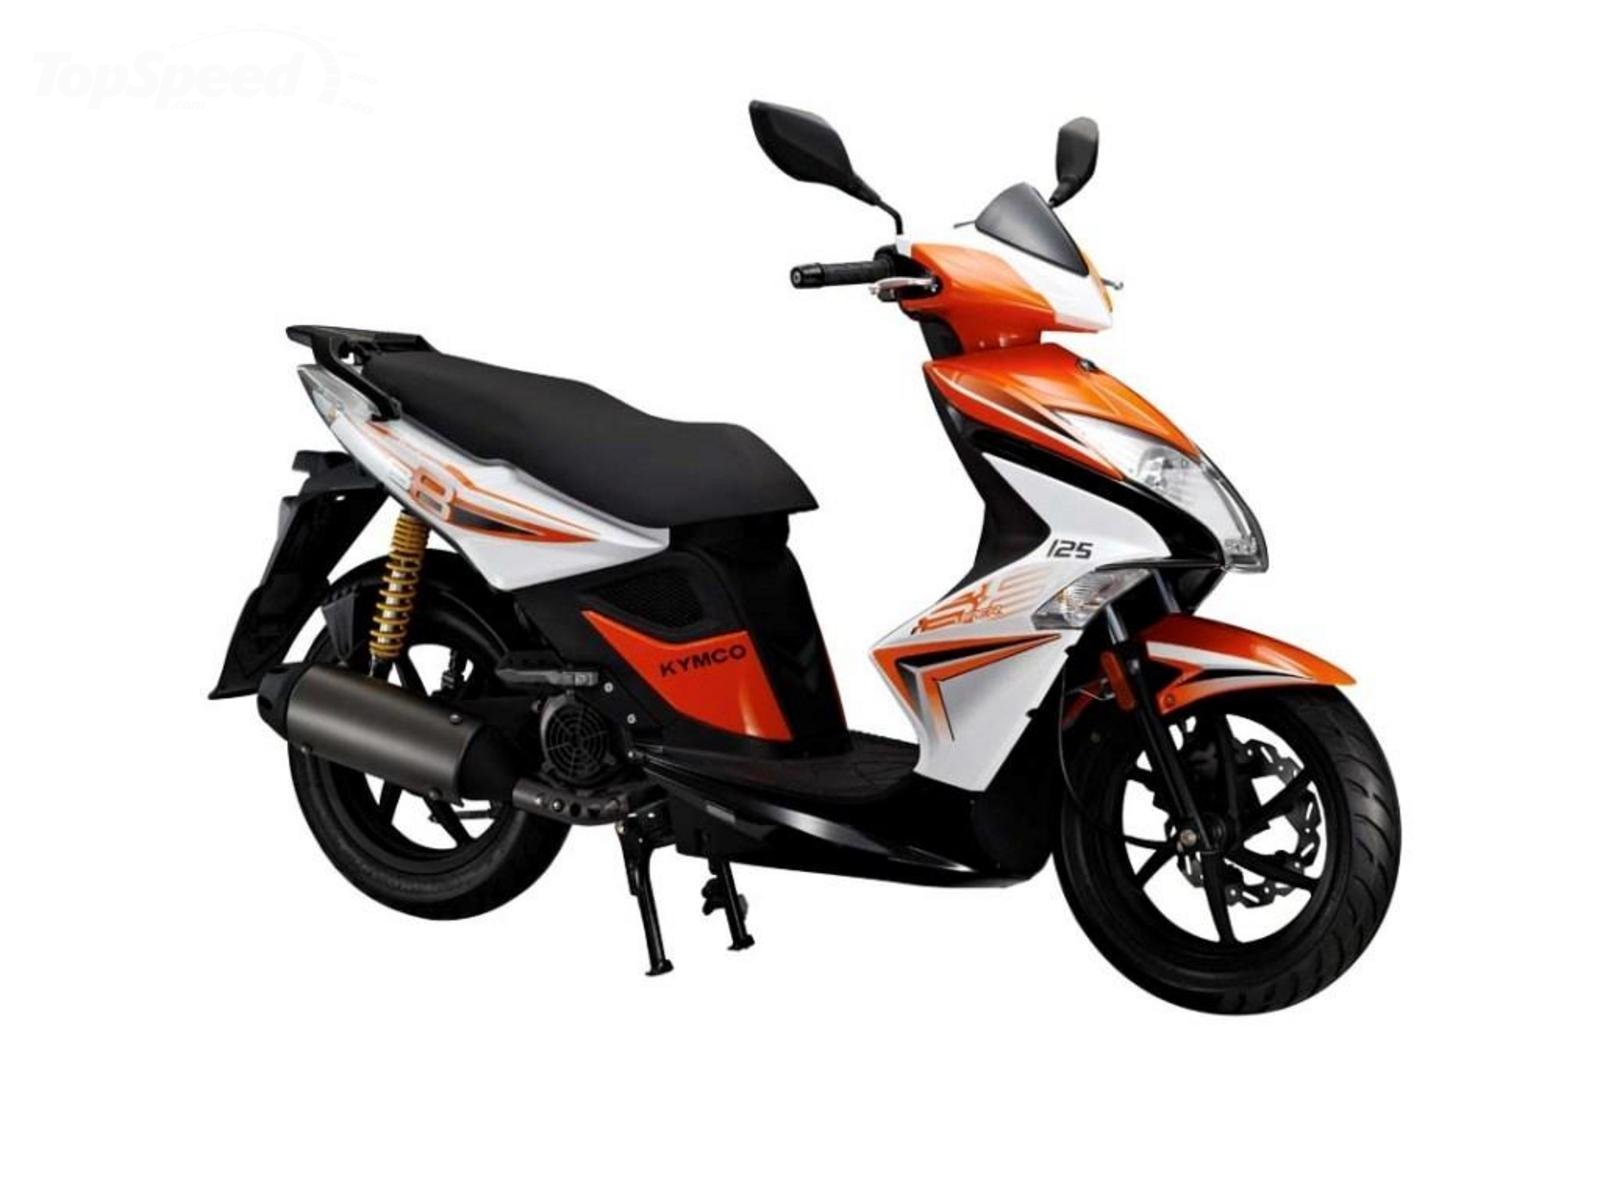 2013 kymco super 8 50 review top speed. Black Bedroom Furniture Sets. Home Design Ideas